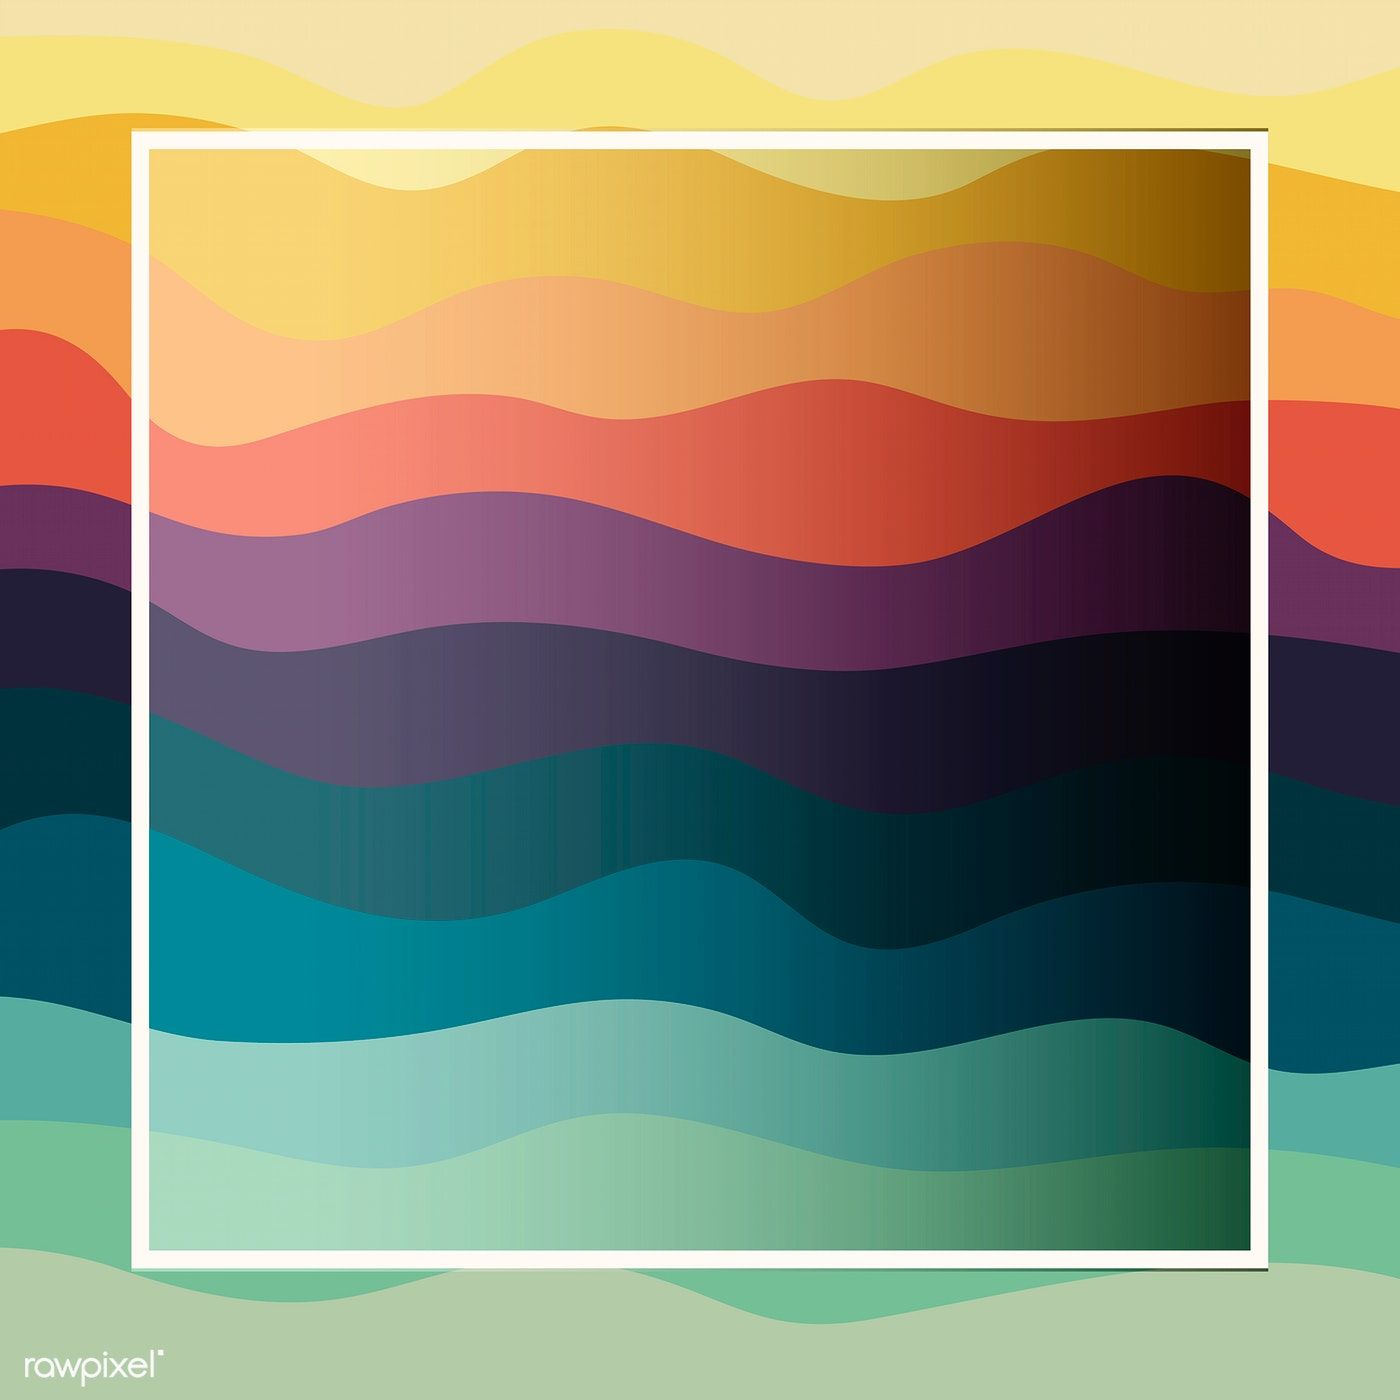 Download premium vector of White frame colorful wave pattern background